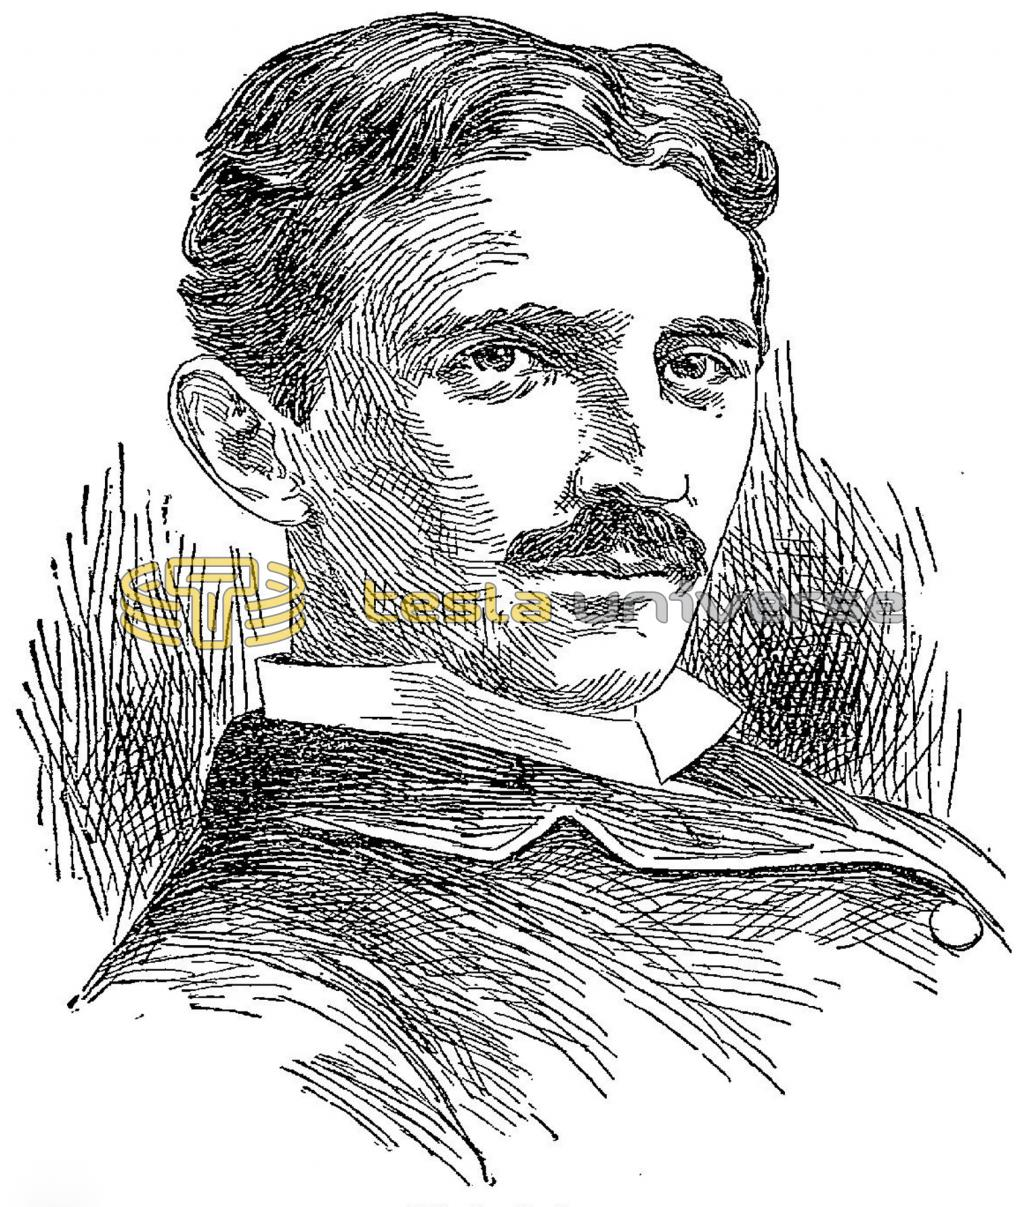 Sketch of Nikola Tesla from the time his lab burned